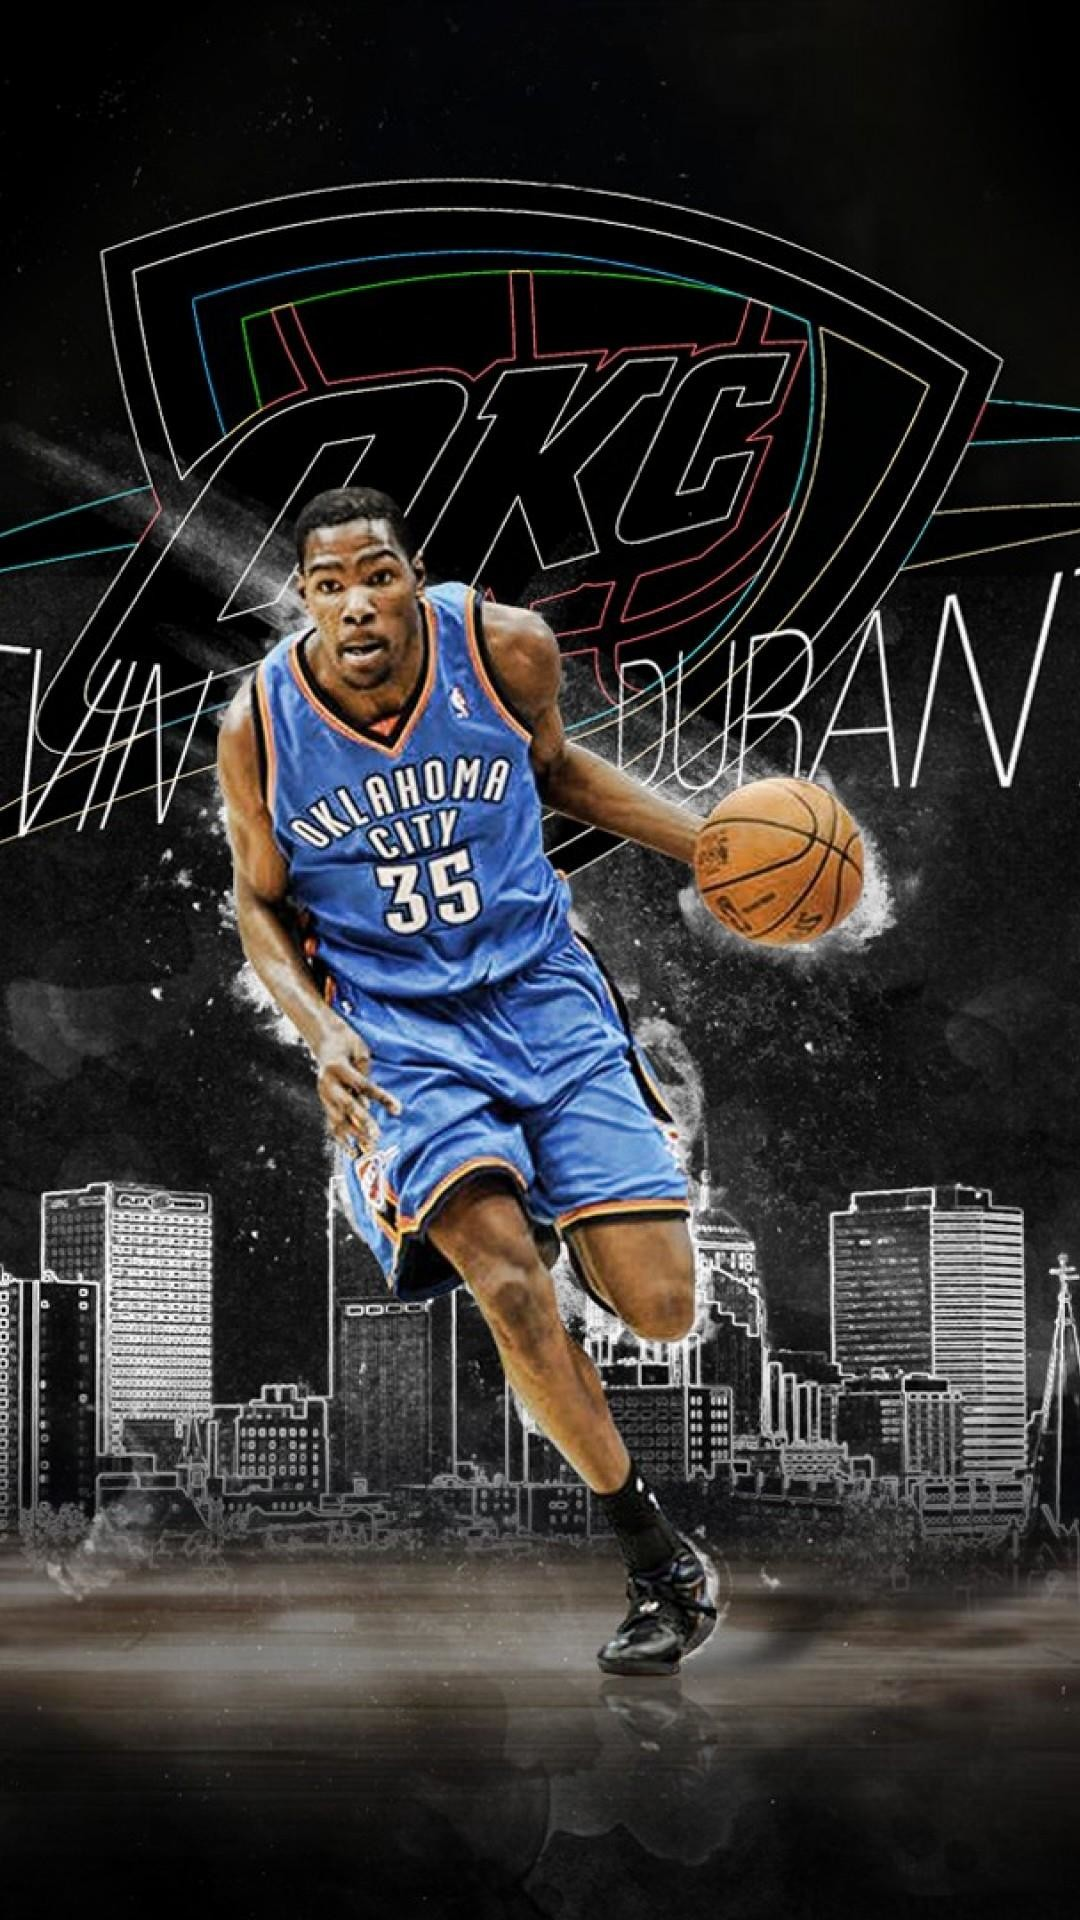 wallpaper.wiki-Download-Basketball-iPhone-5-Photo-PIC-